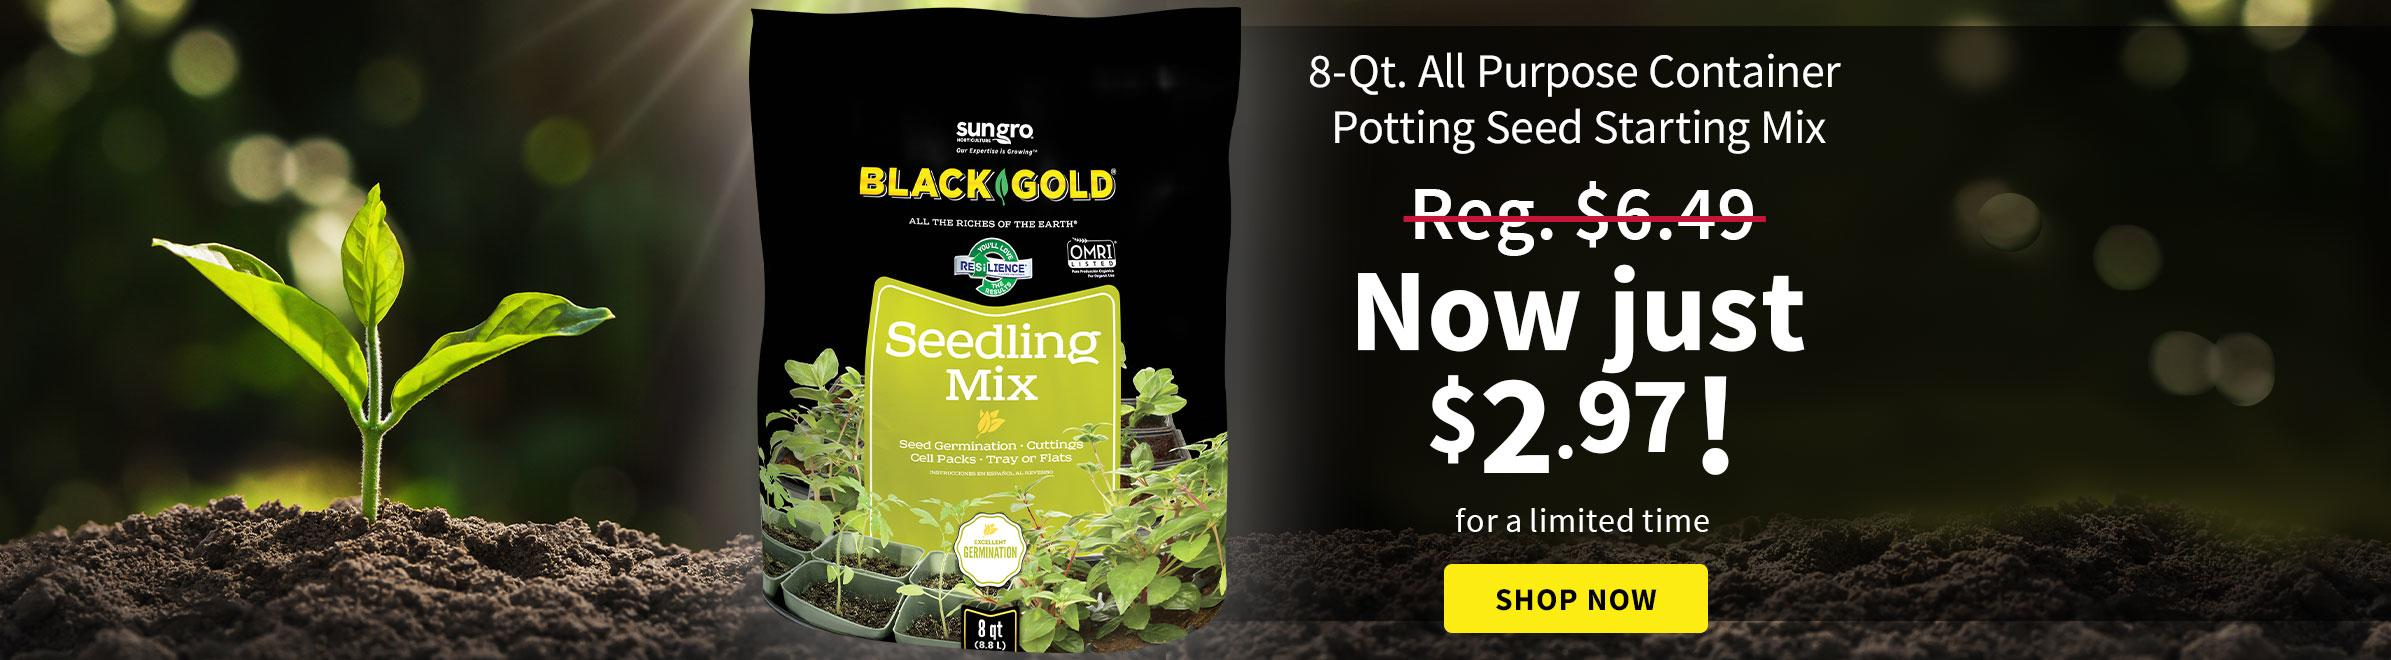 Black Gold 8 Qt. All Purpose Container Potting Seed Starting Mix